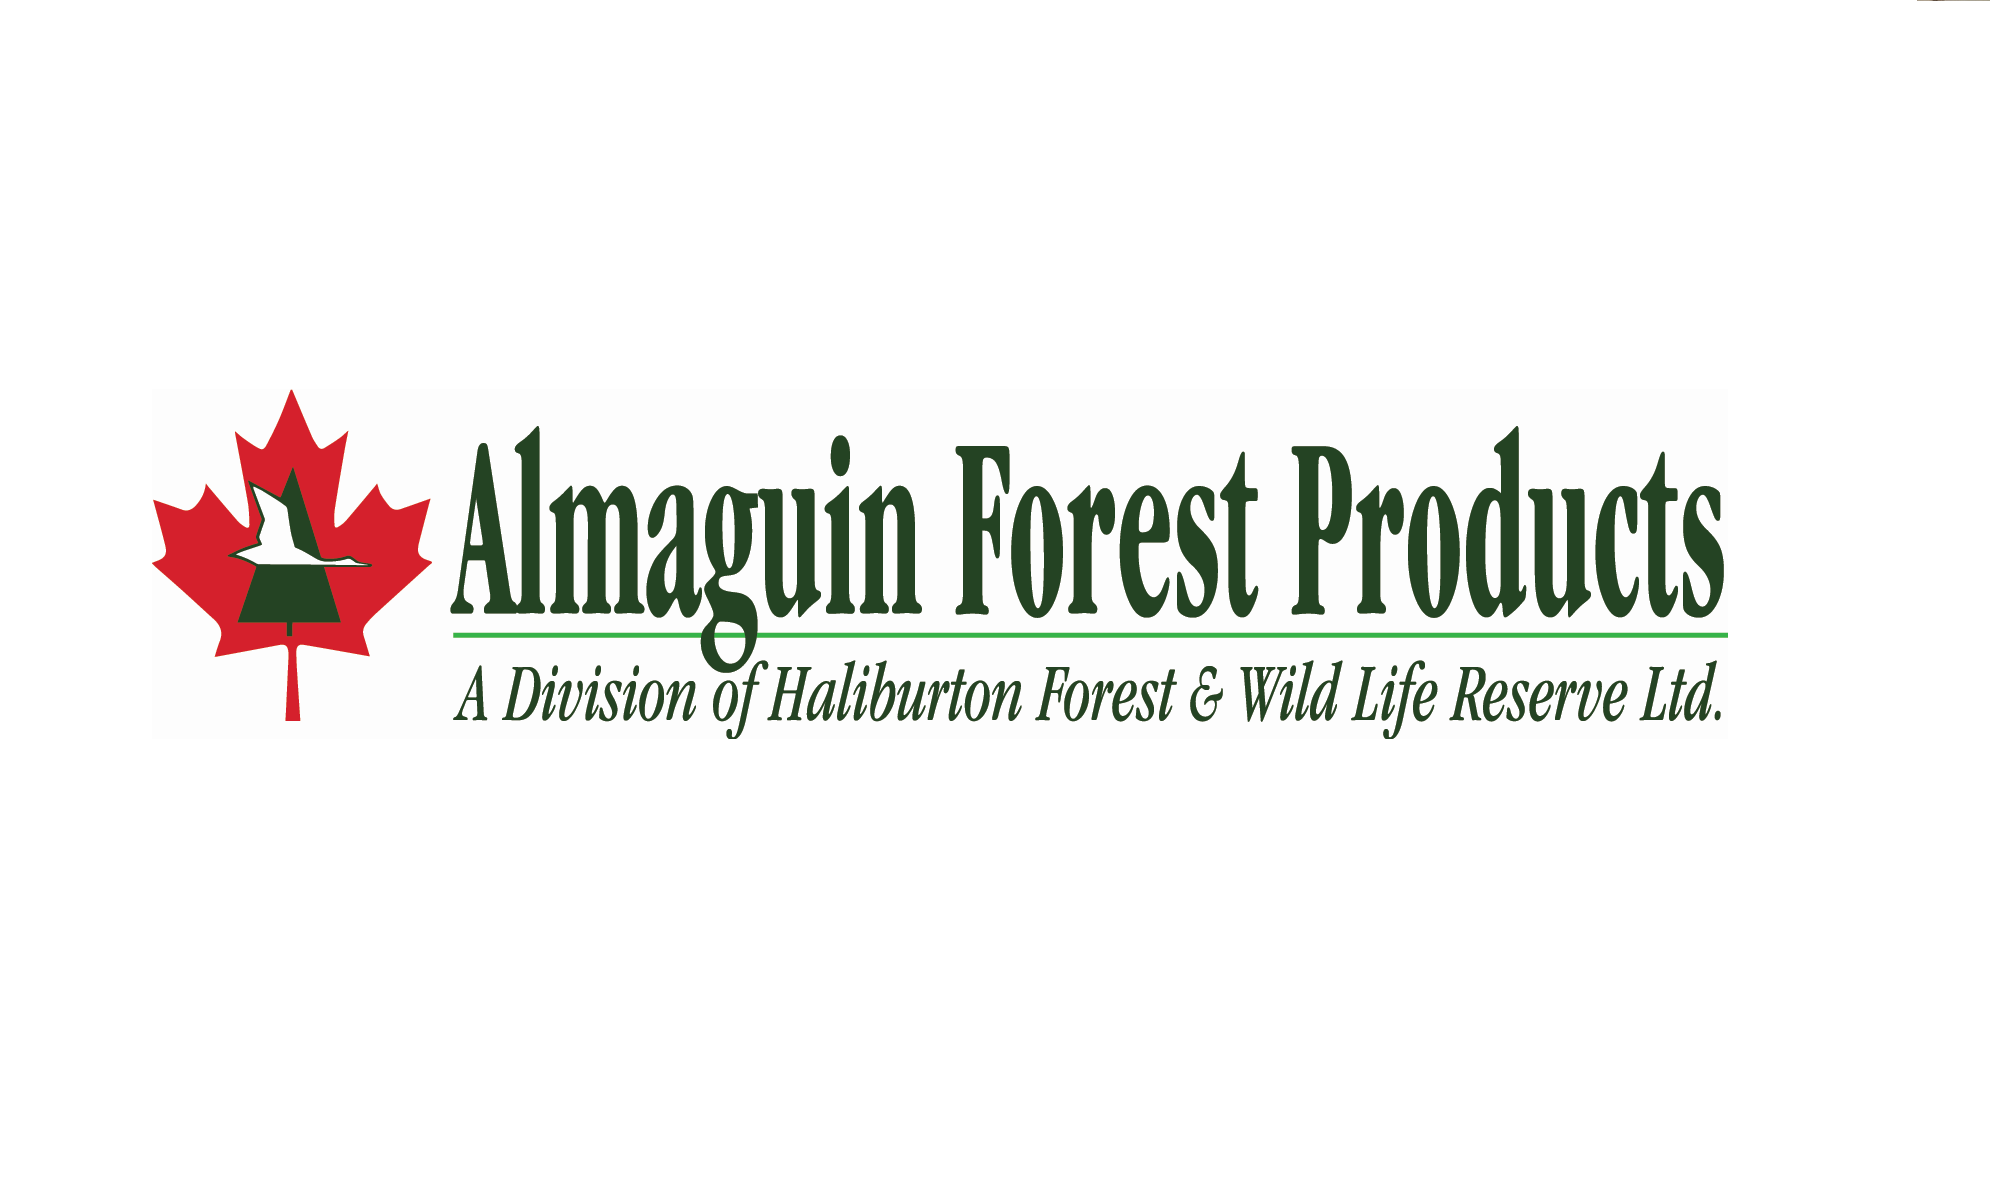 Almaguin Forest Products